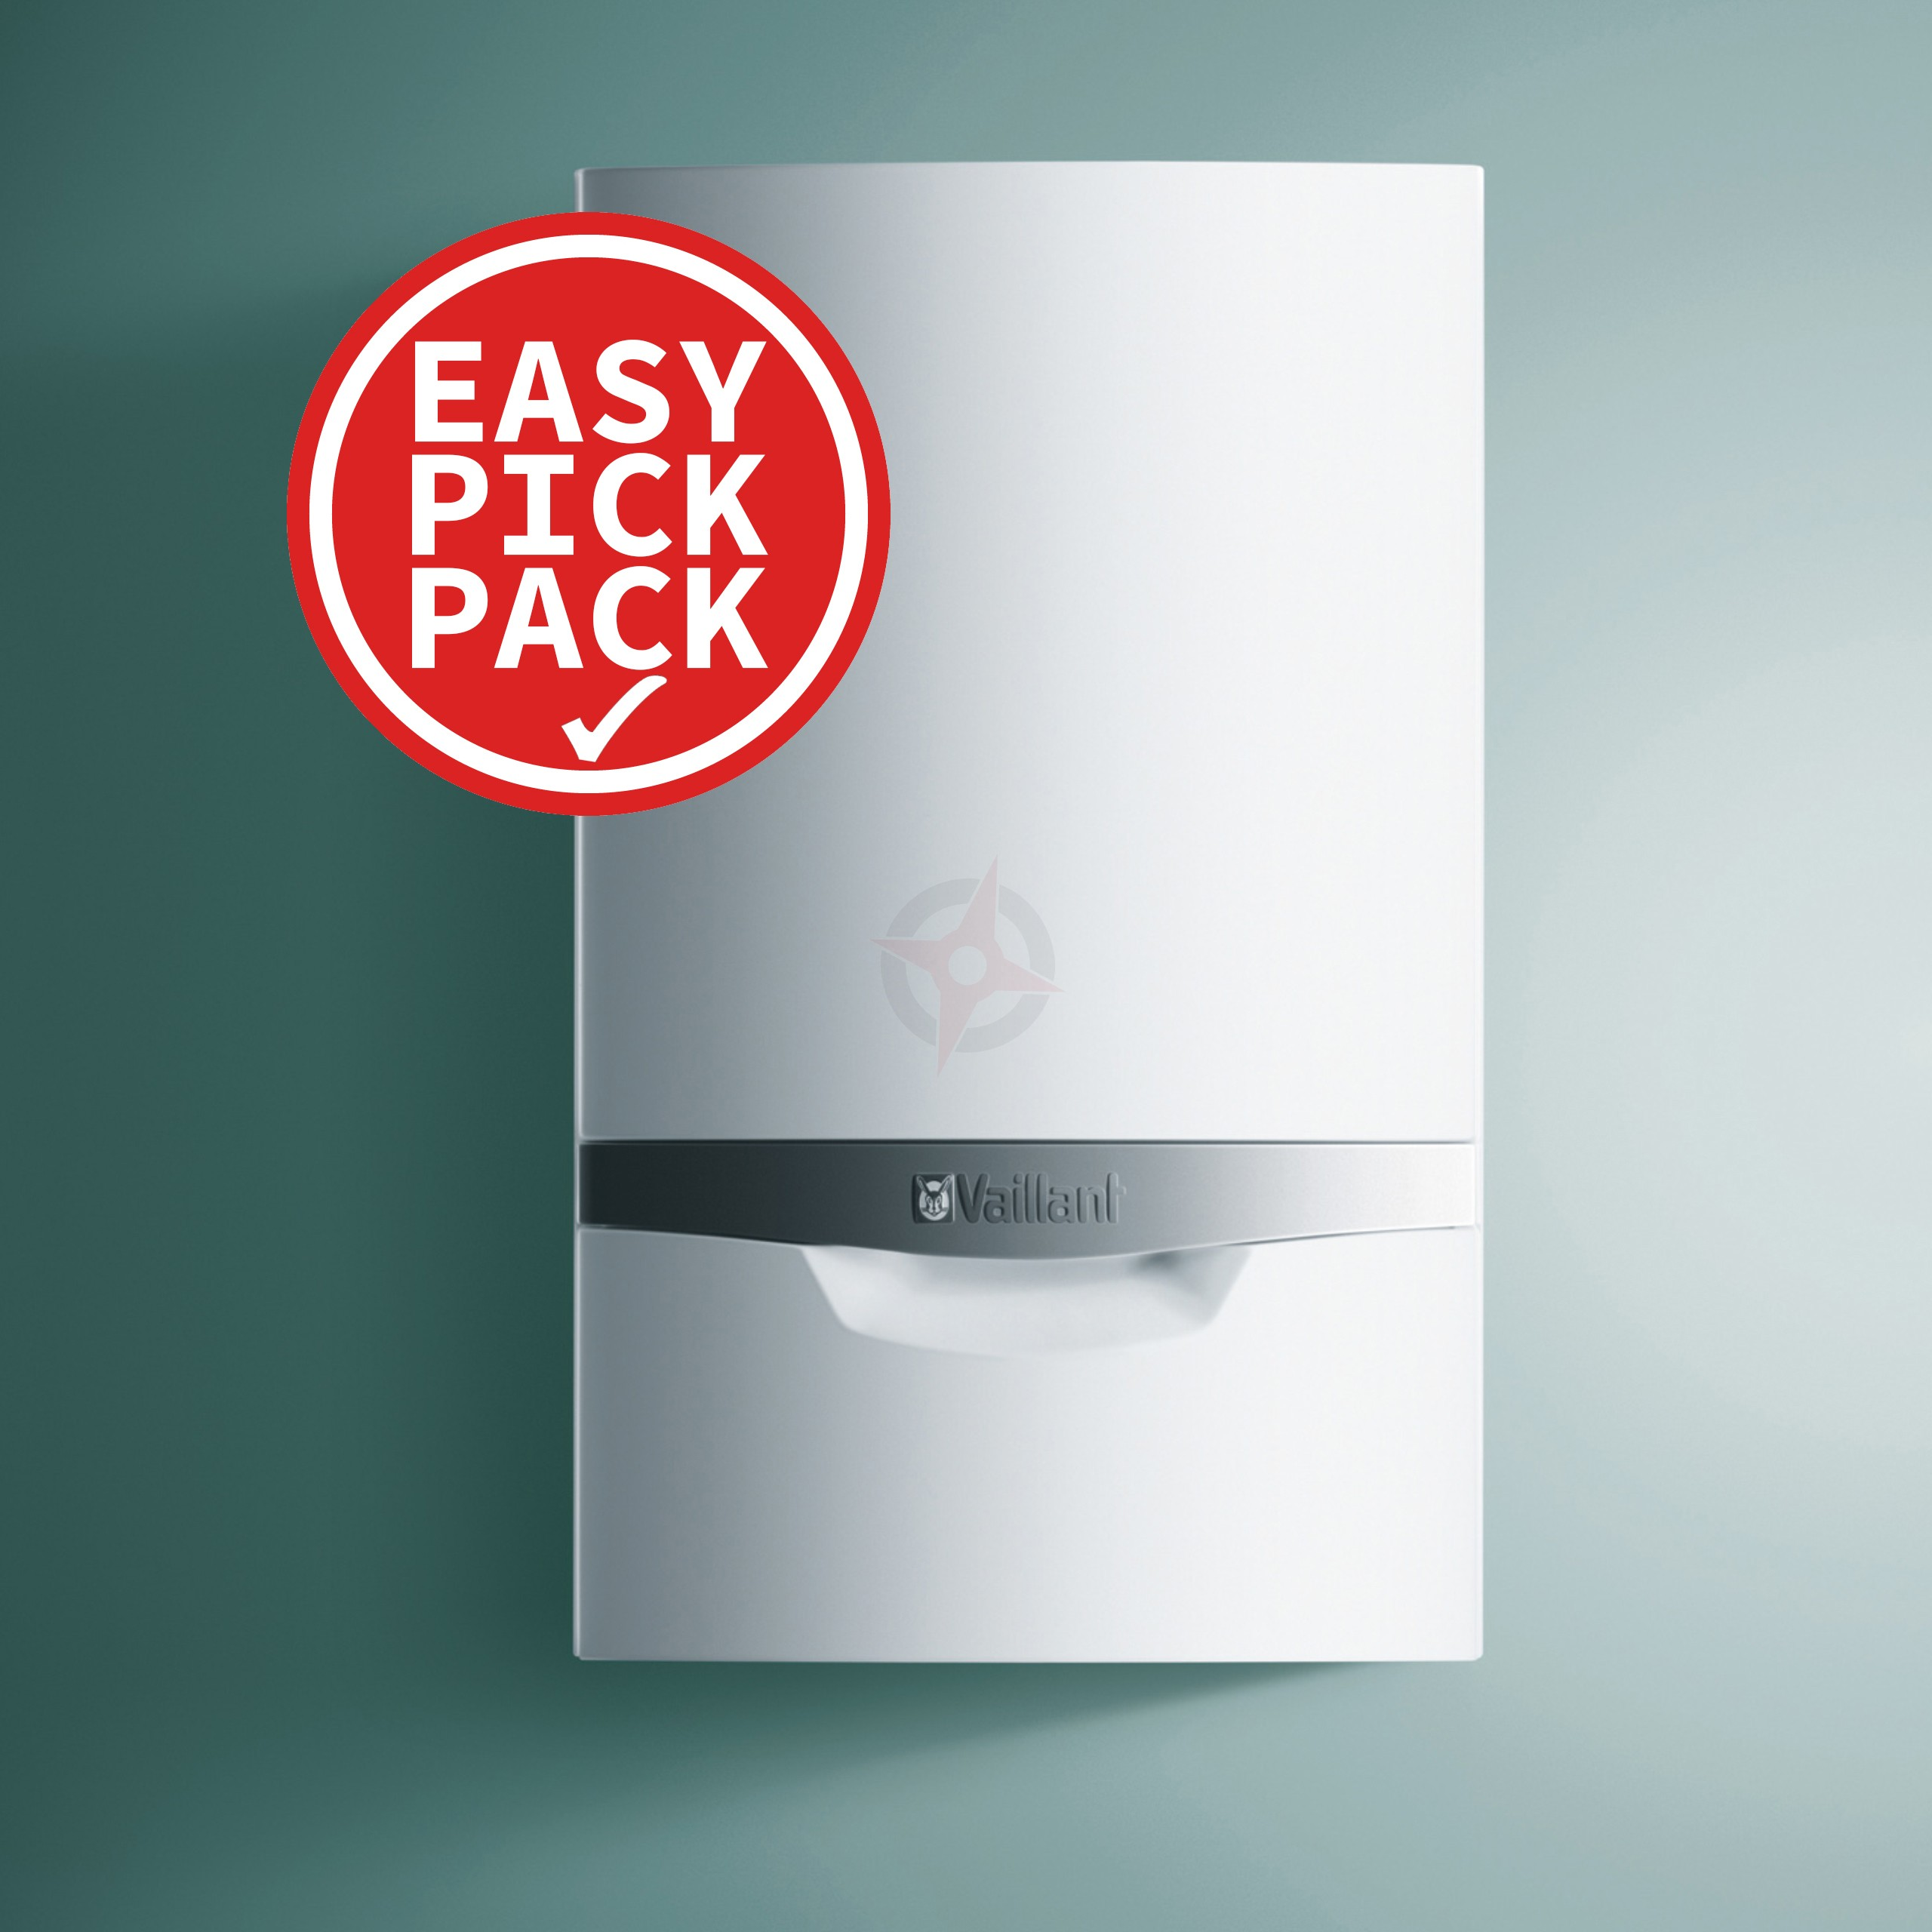 Vaillant ecoTEC Plus 624 (ErP) System Boiler Easy Pick Pack